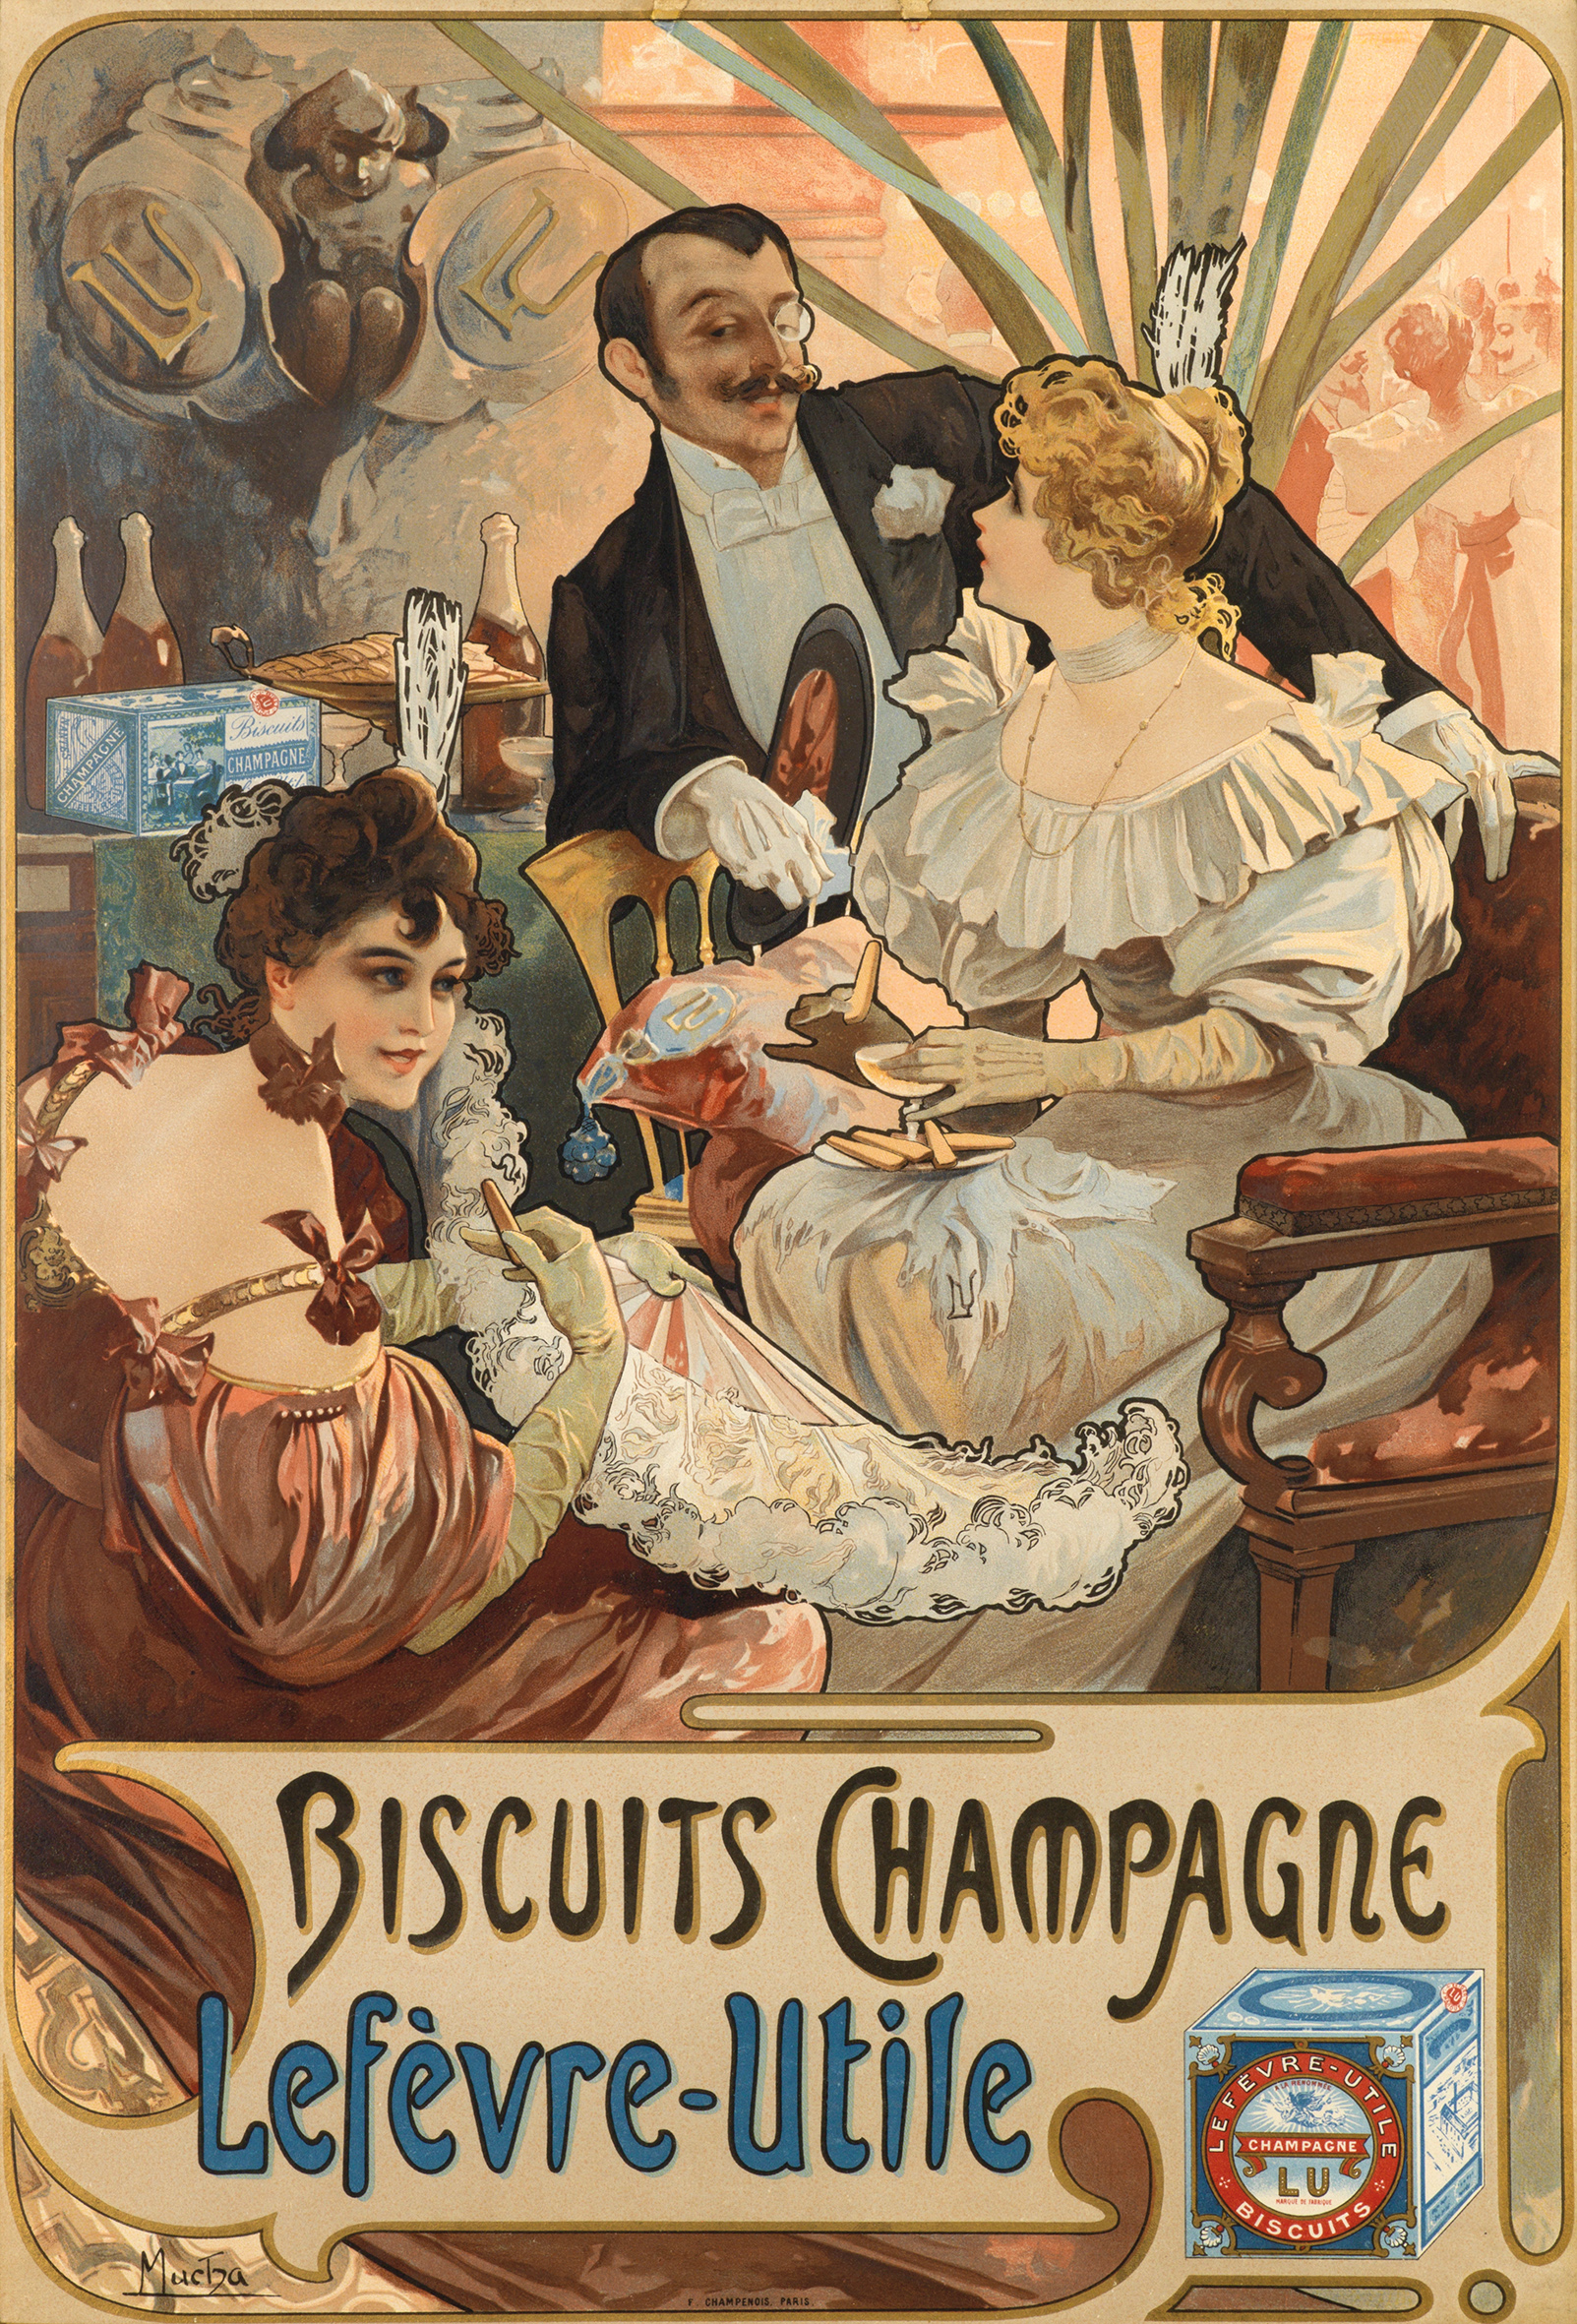 illustrational poster of a man and two women lounging while having drinks and biscuits